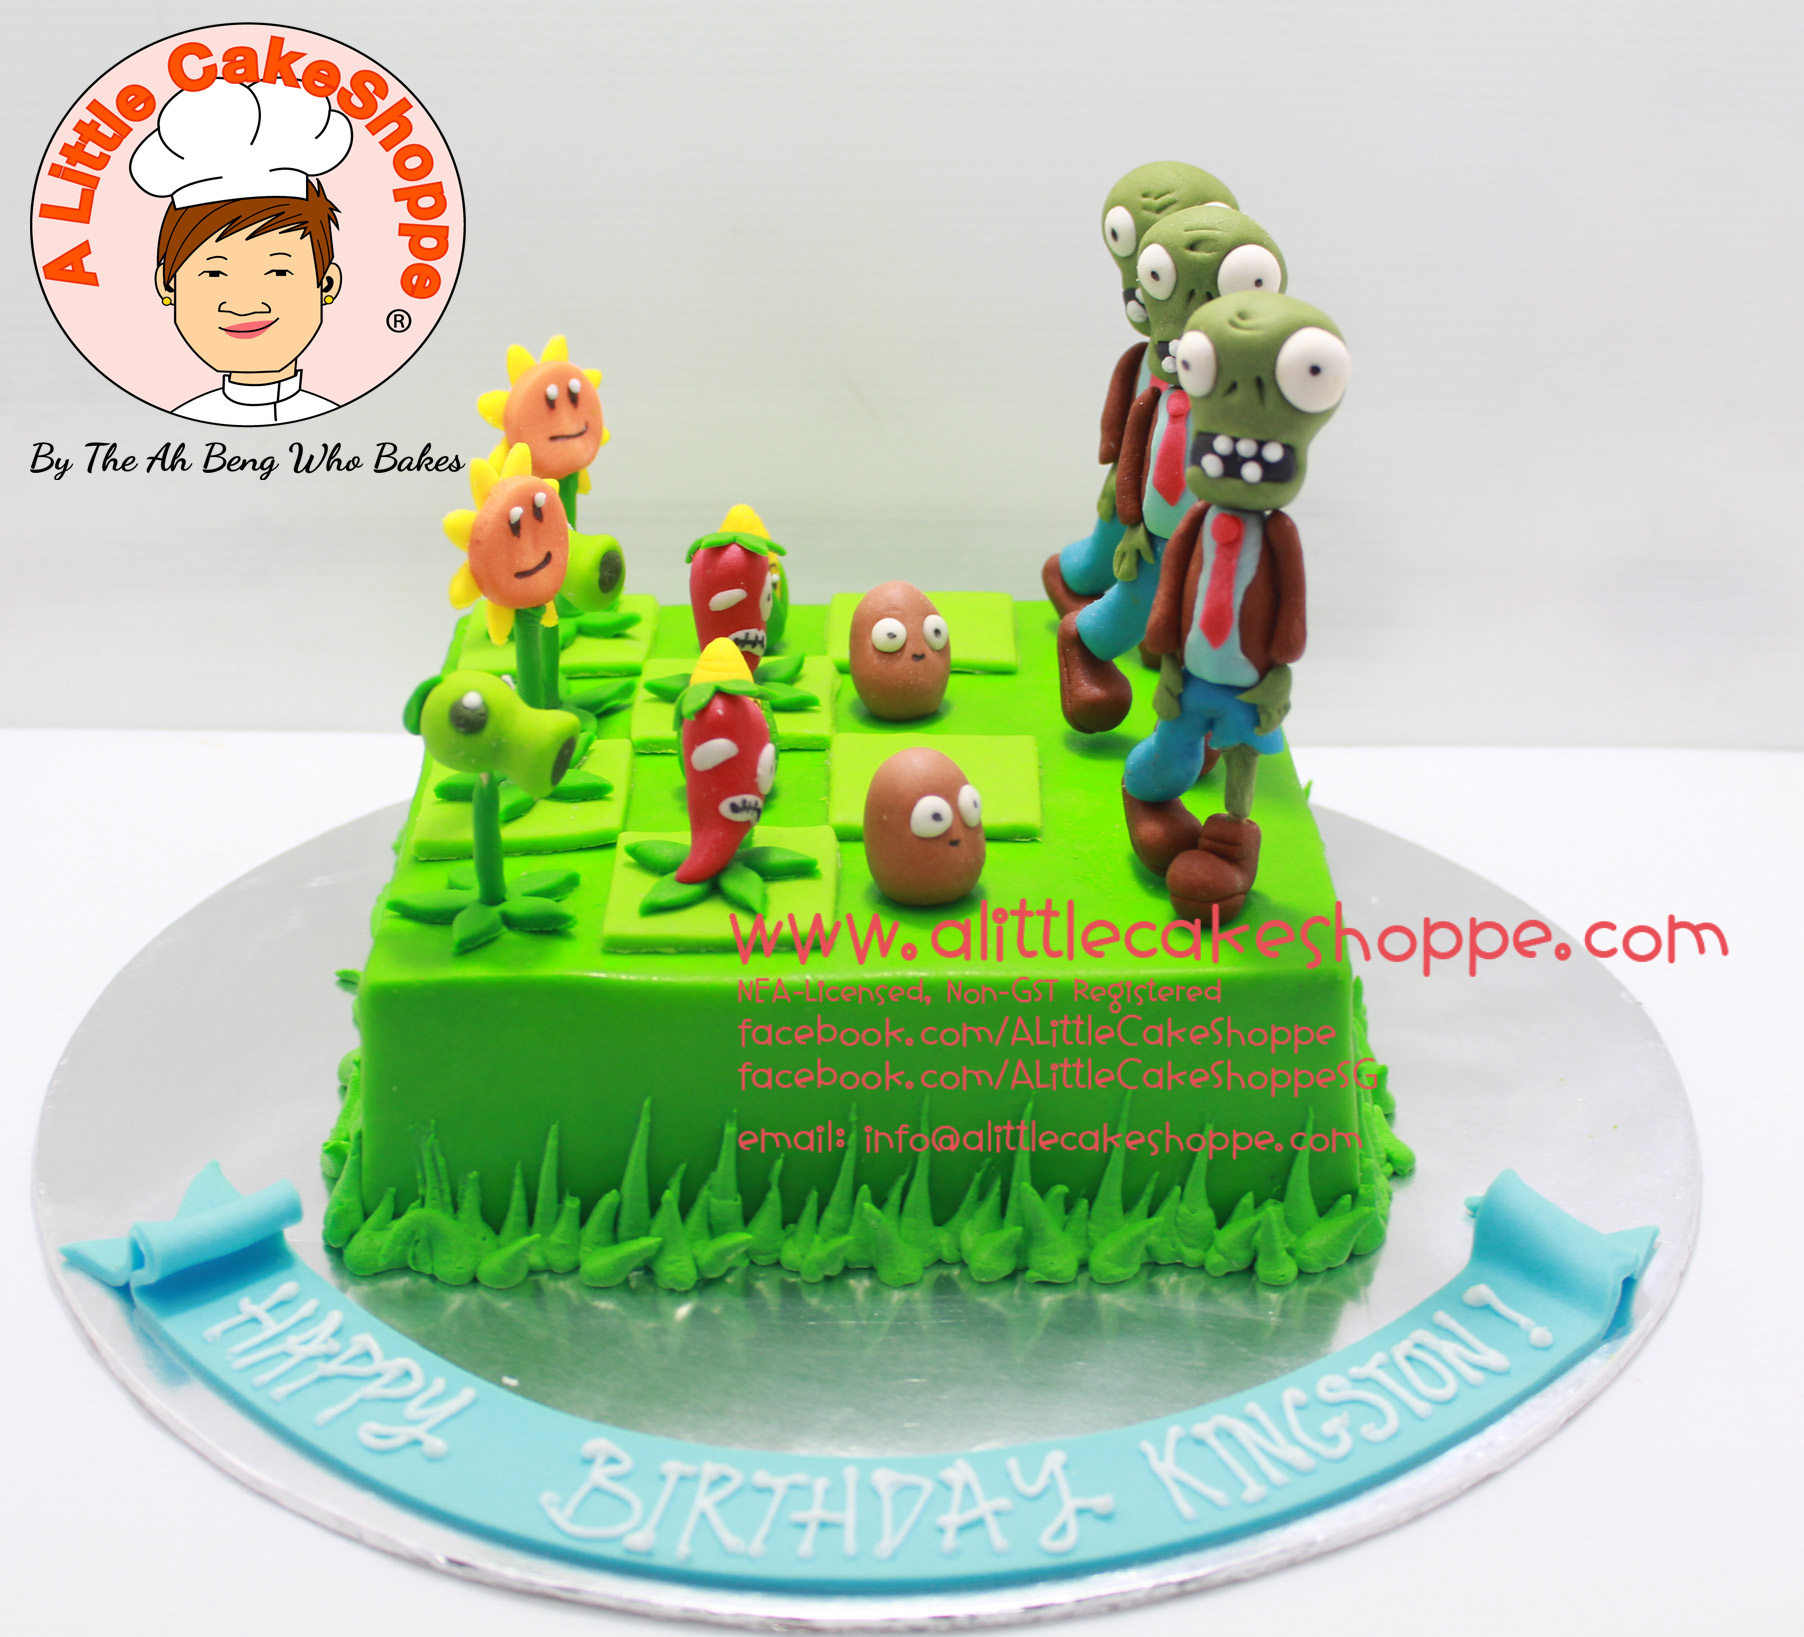 Best Customised Cake Shop Singapore custom cake 2D 3D birthday cake cupcakes desserts wedding corporate events anniversary 1st birthday 21st birthday fondant fresh cream buttercream cakes alittlecakeshoppe a little cake shoppe compliments review singapore bakers SG cake shop cakeshop ah beng who bakes plants and zombies